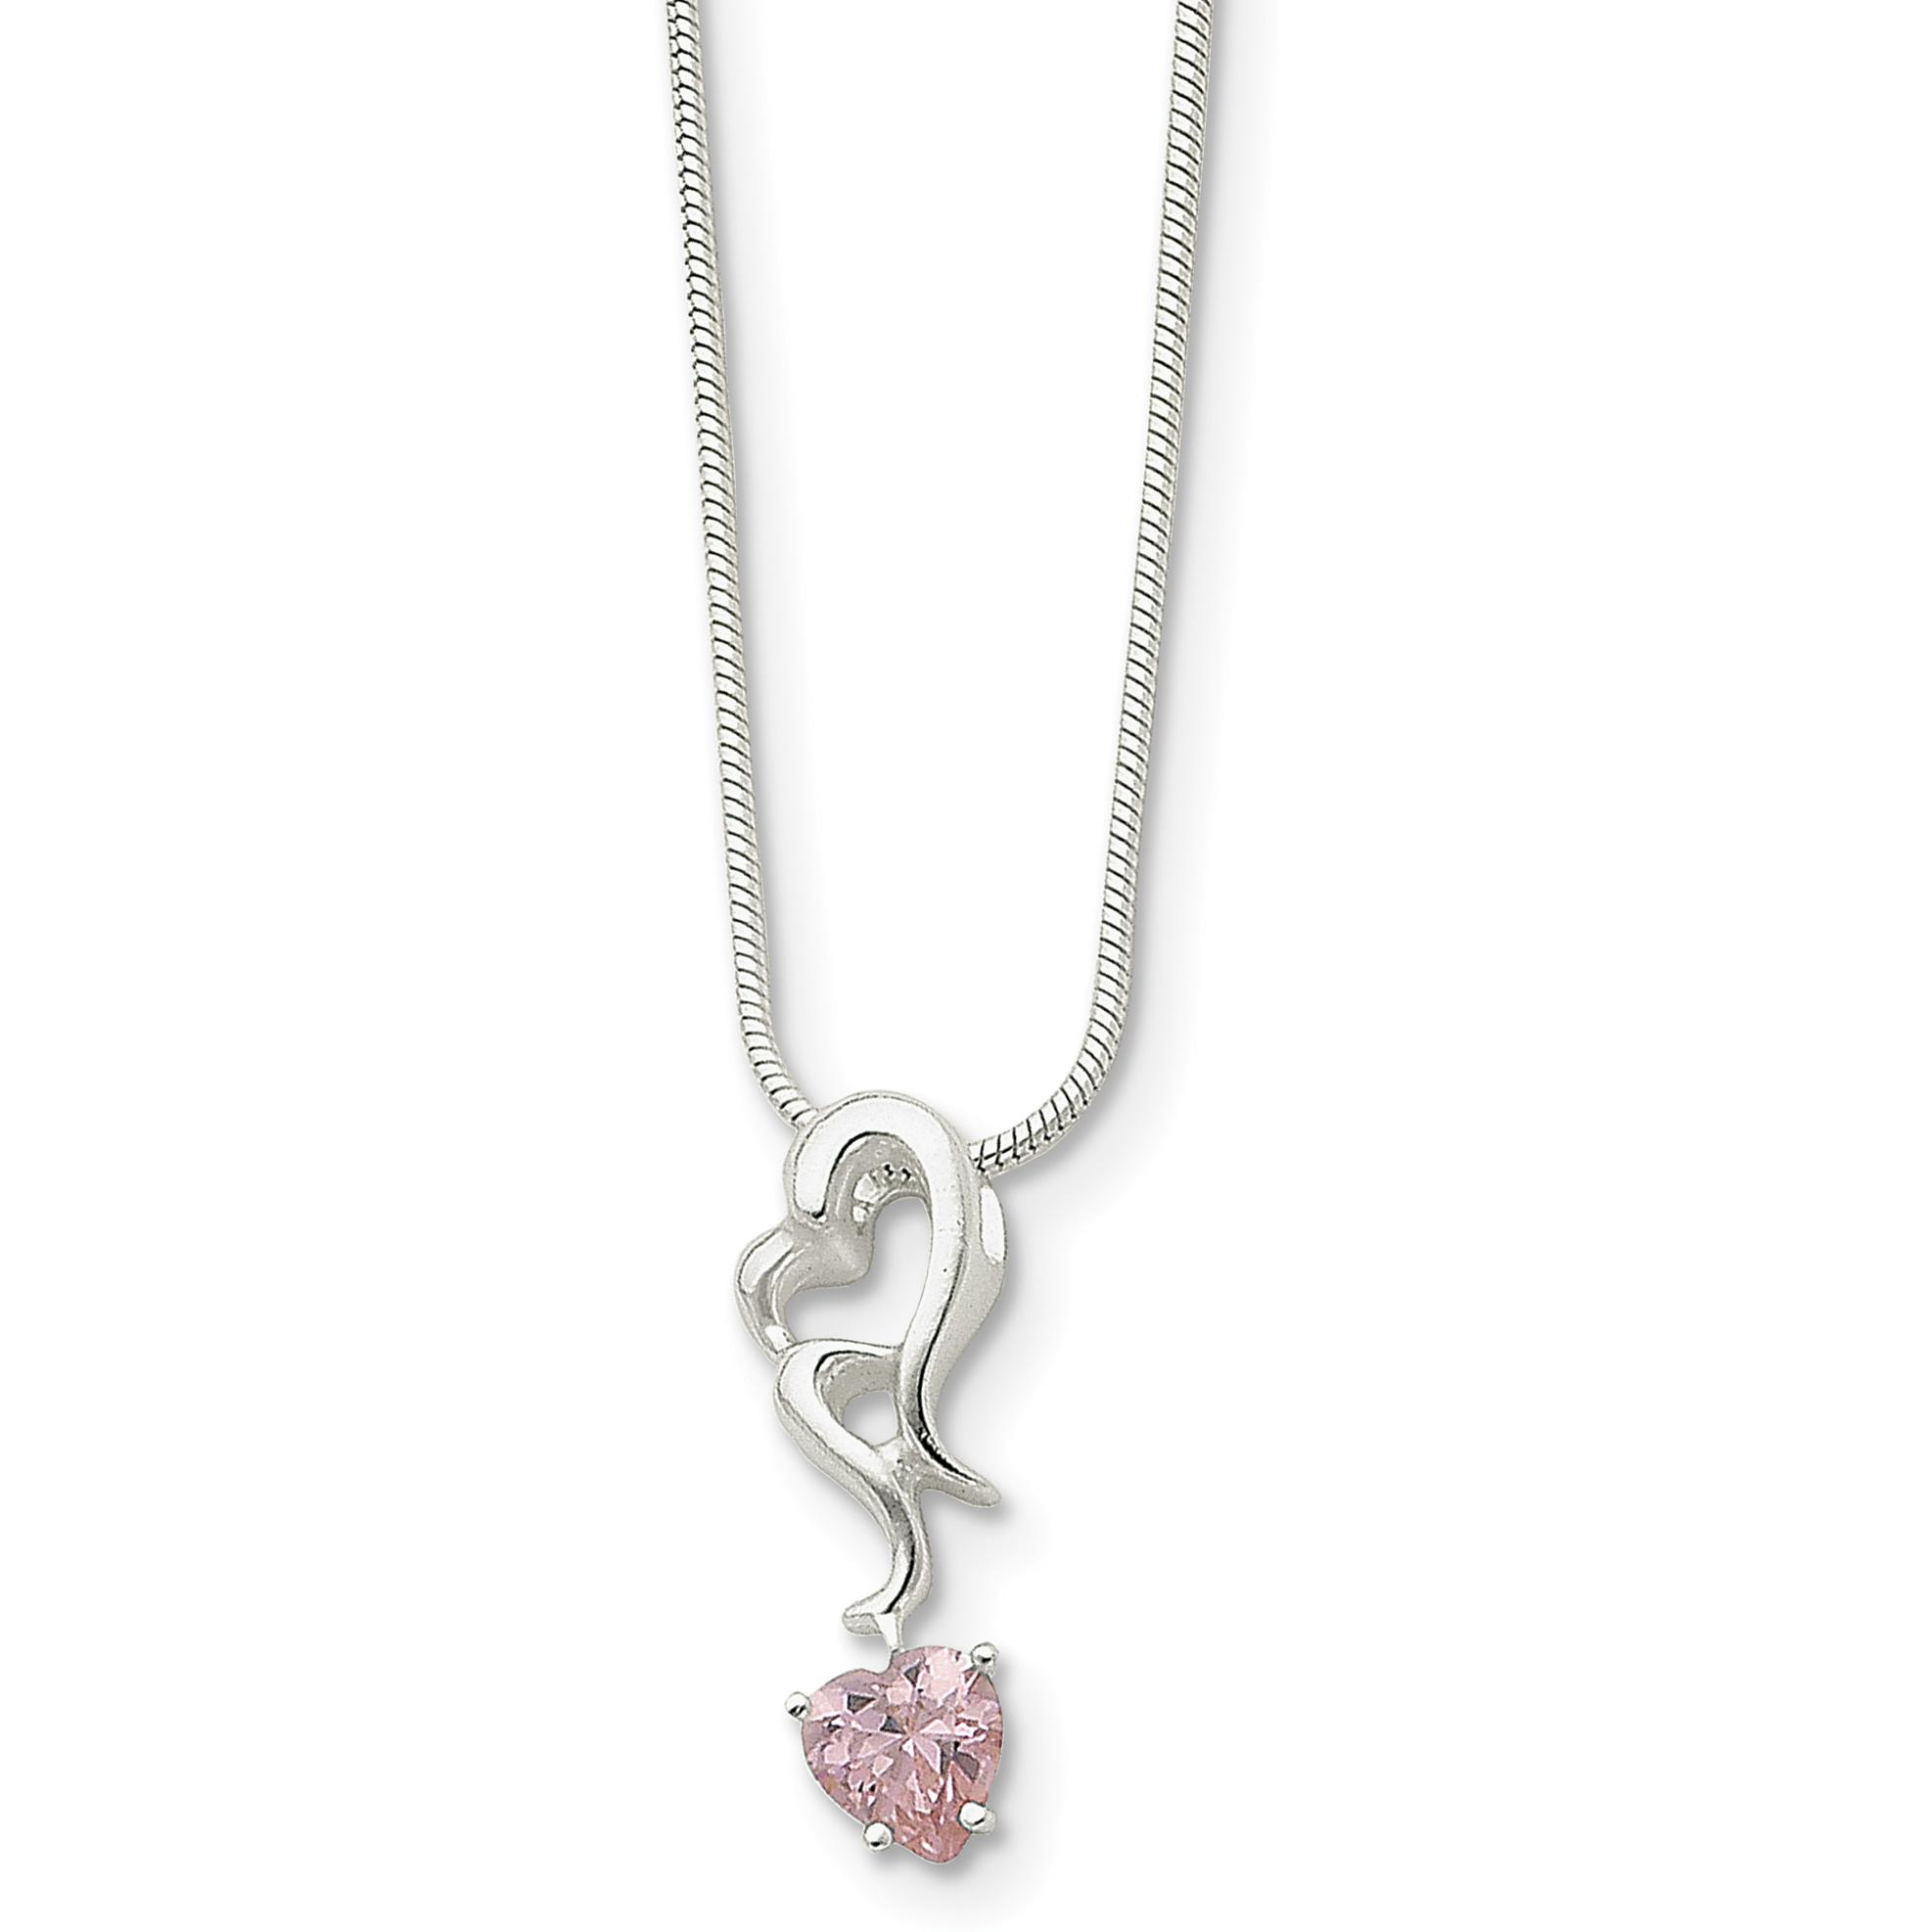 "Findingking Sterling Silver Pink CZ Heart Necklace Jewelry 18"" at Sears.com"